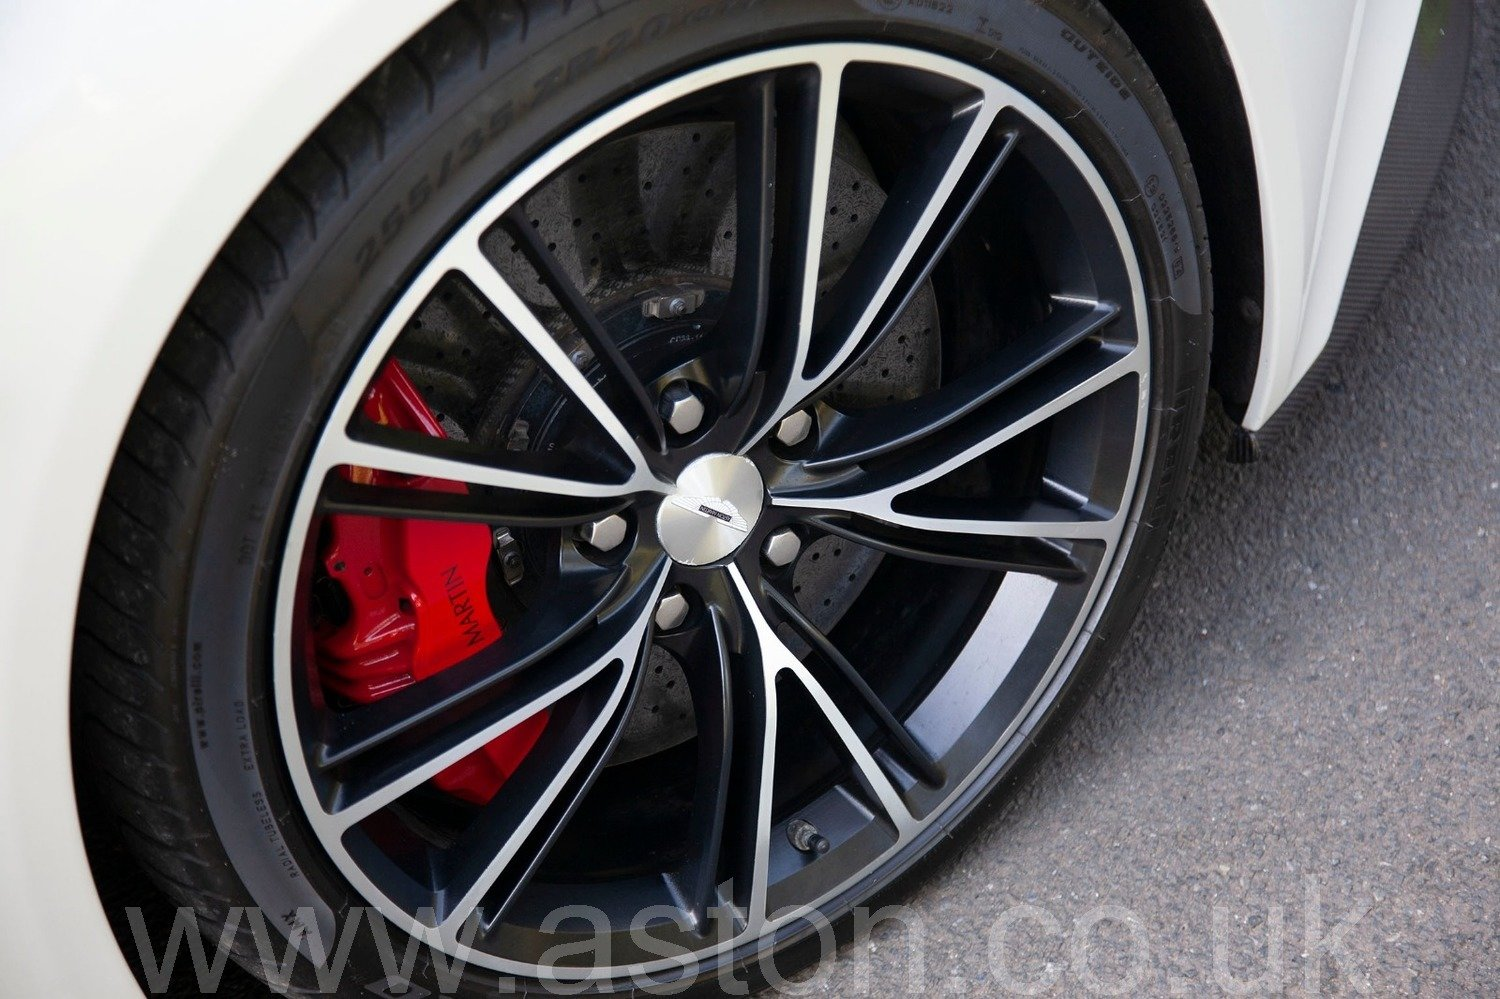 2013 Vanquish 6.0 V12 Touchtronic 2+2 For Sale (picture 4 of 6)